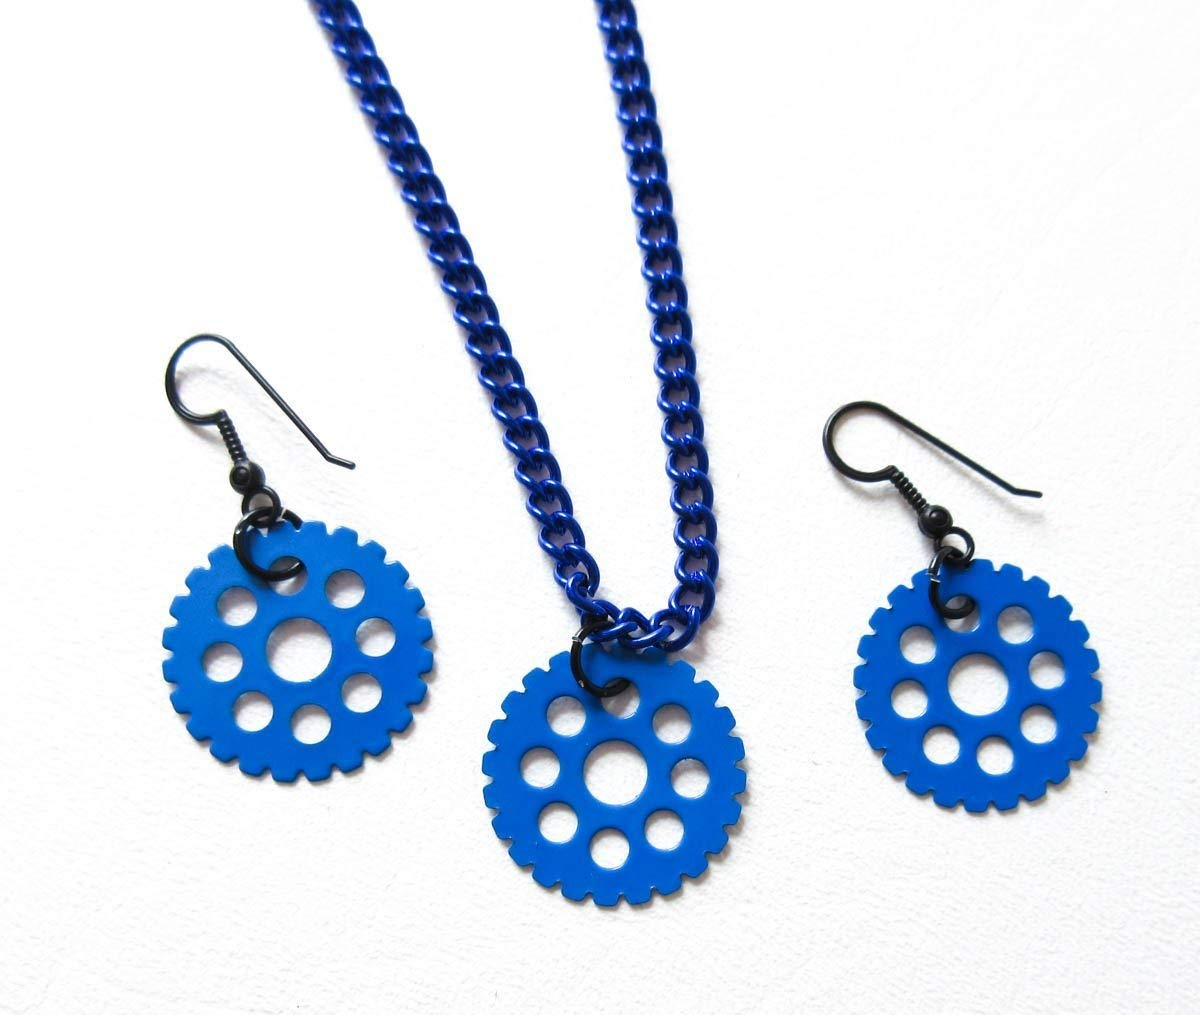 Blue Gear Necklace and Earring Set